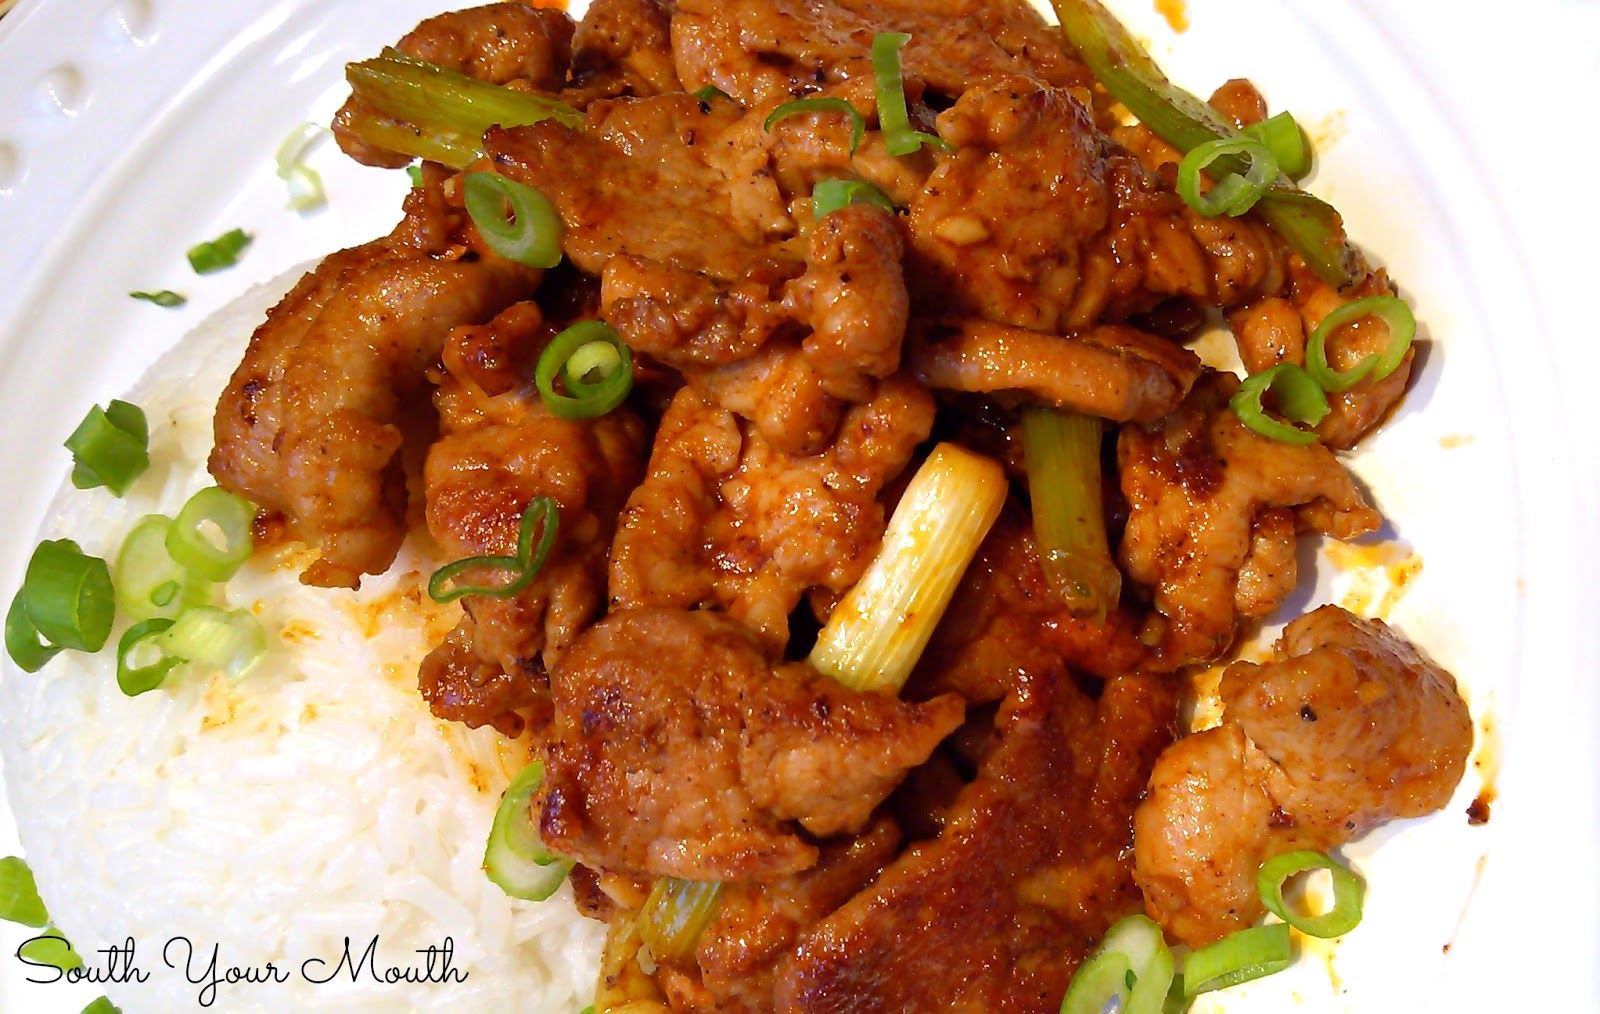 Korean Spicy Pork: Spicy strips of pork with sriracha, ginger, garlic and onions.